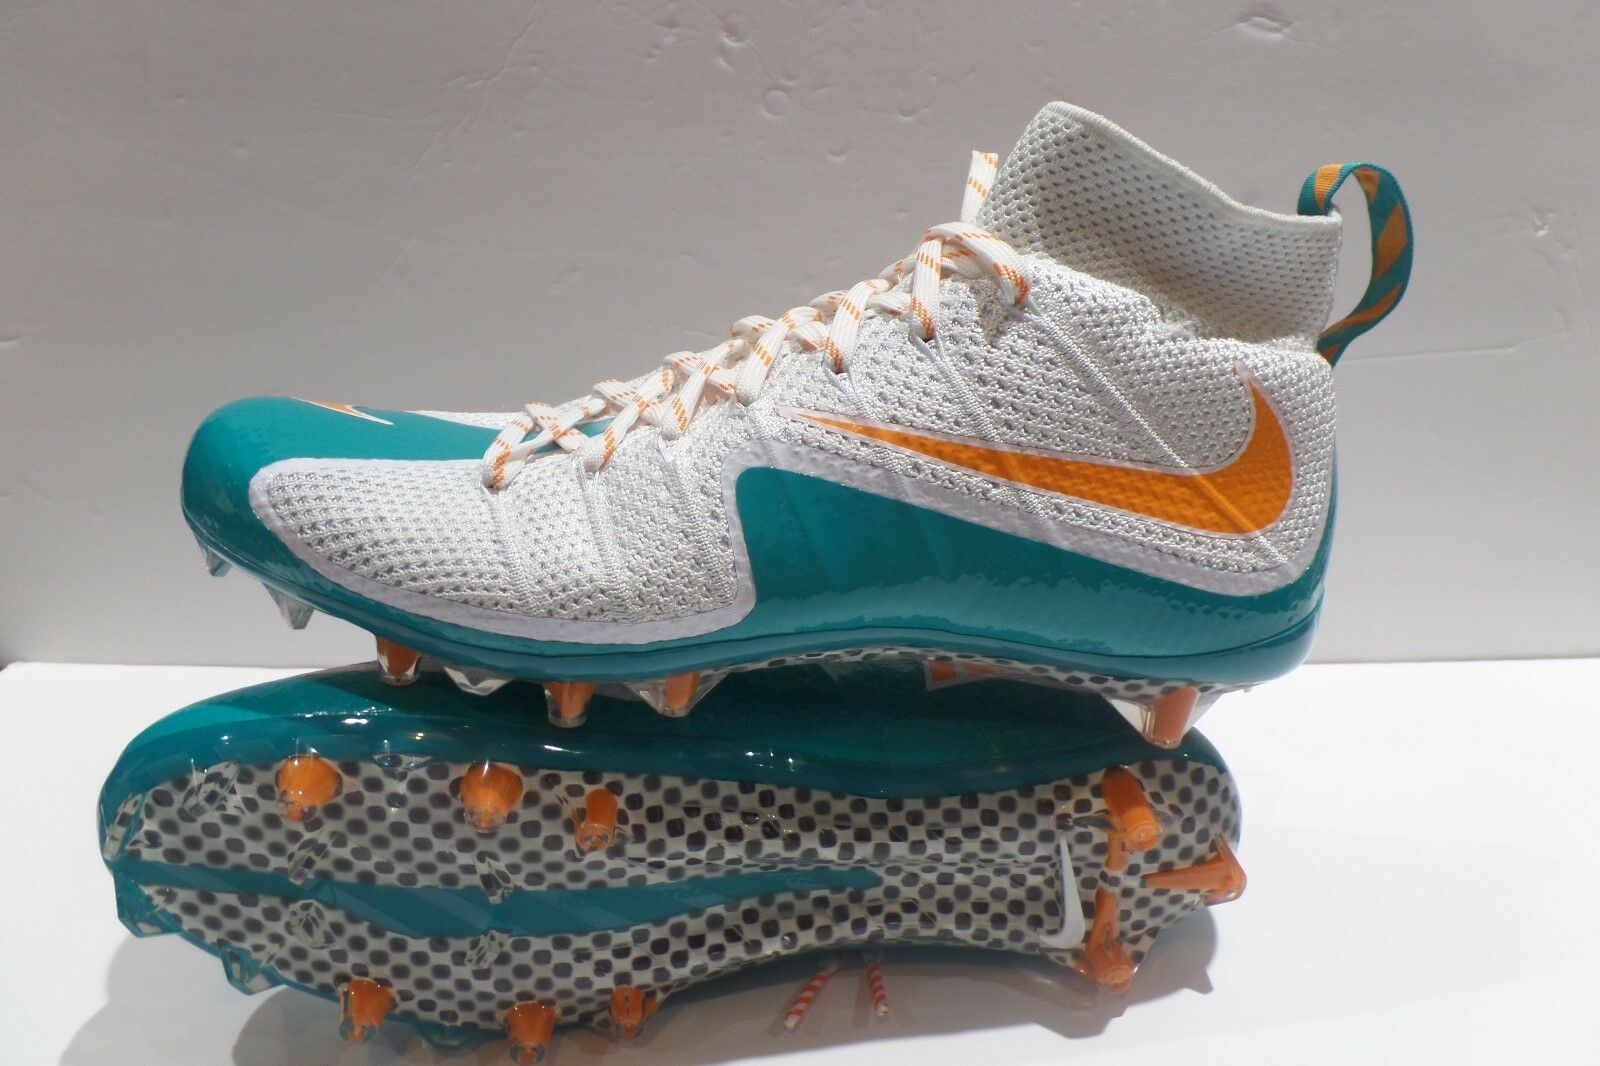 Nike Vapor Untouchable PF Miami Dolphins 707455-117 Mens Football Cleats 13